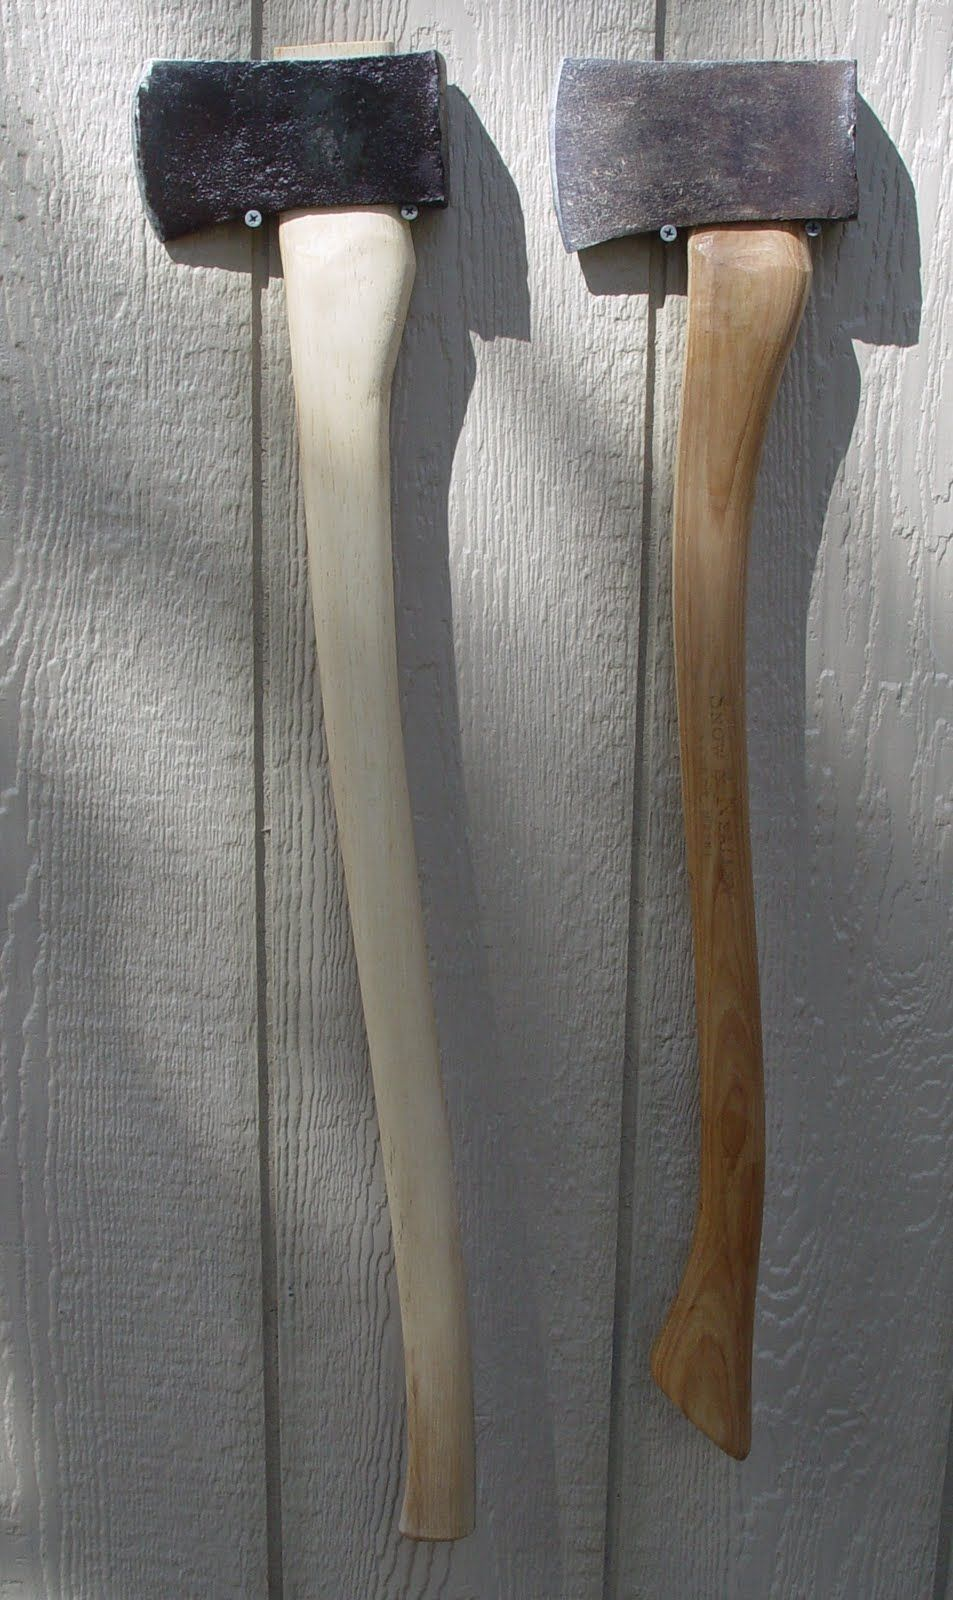 Snow & Nealley Axes